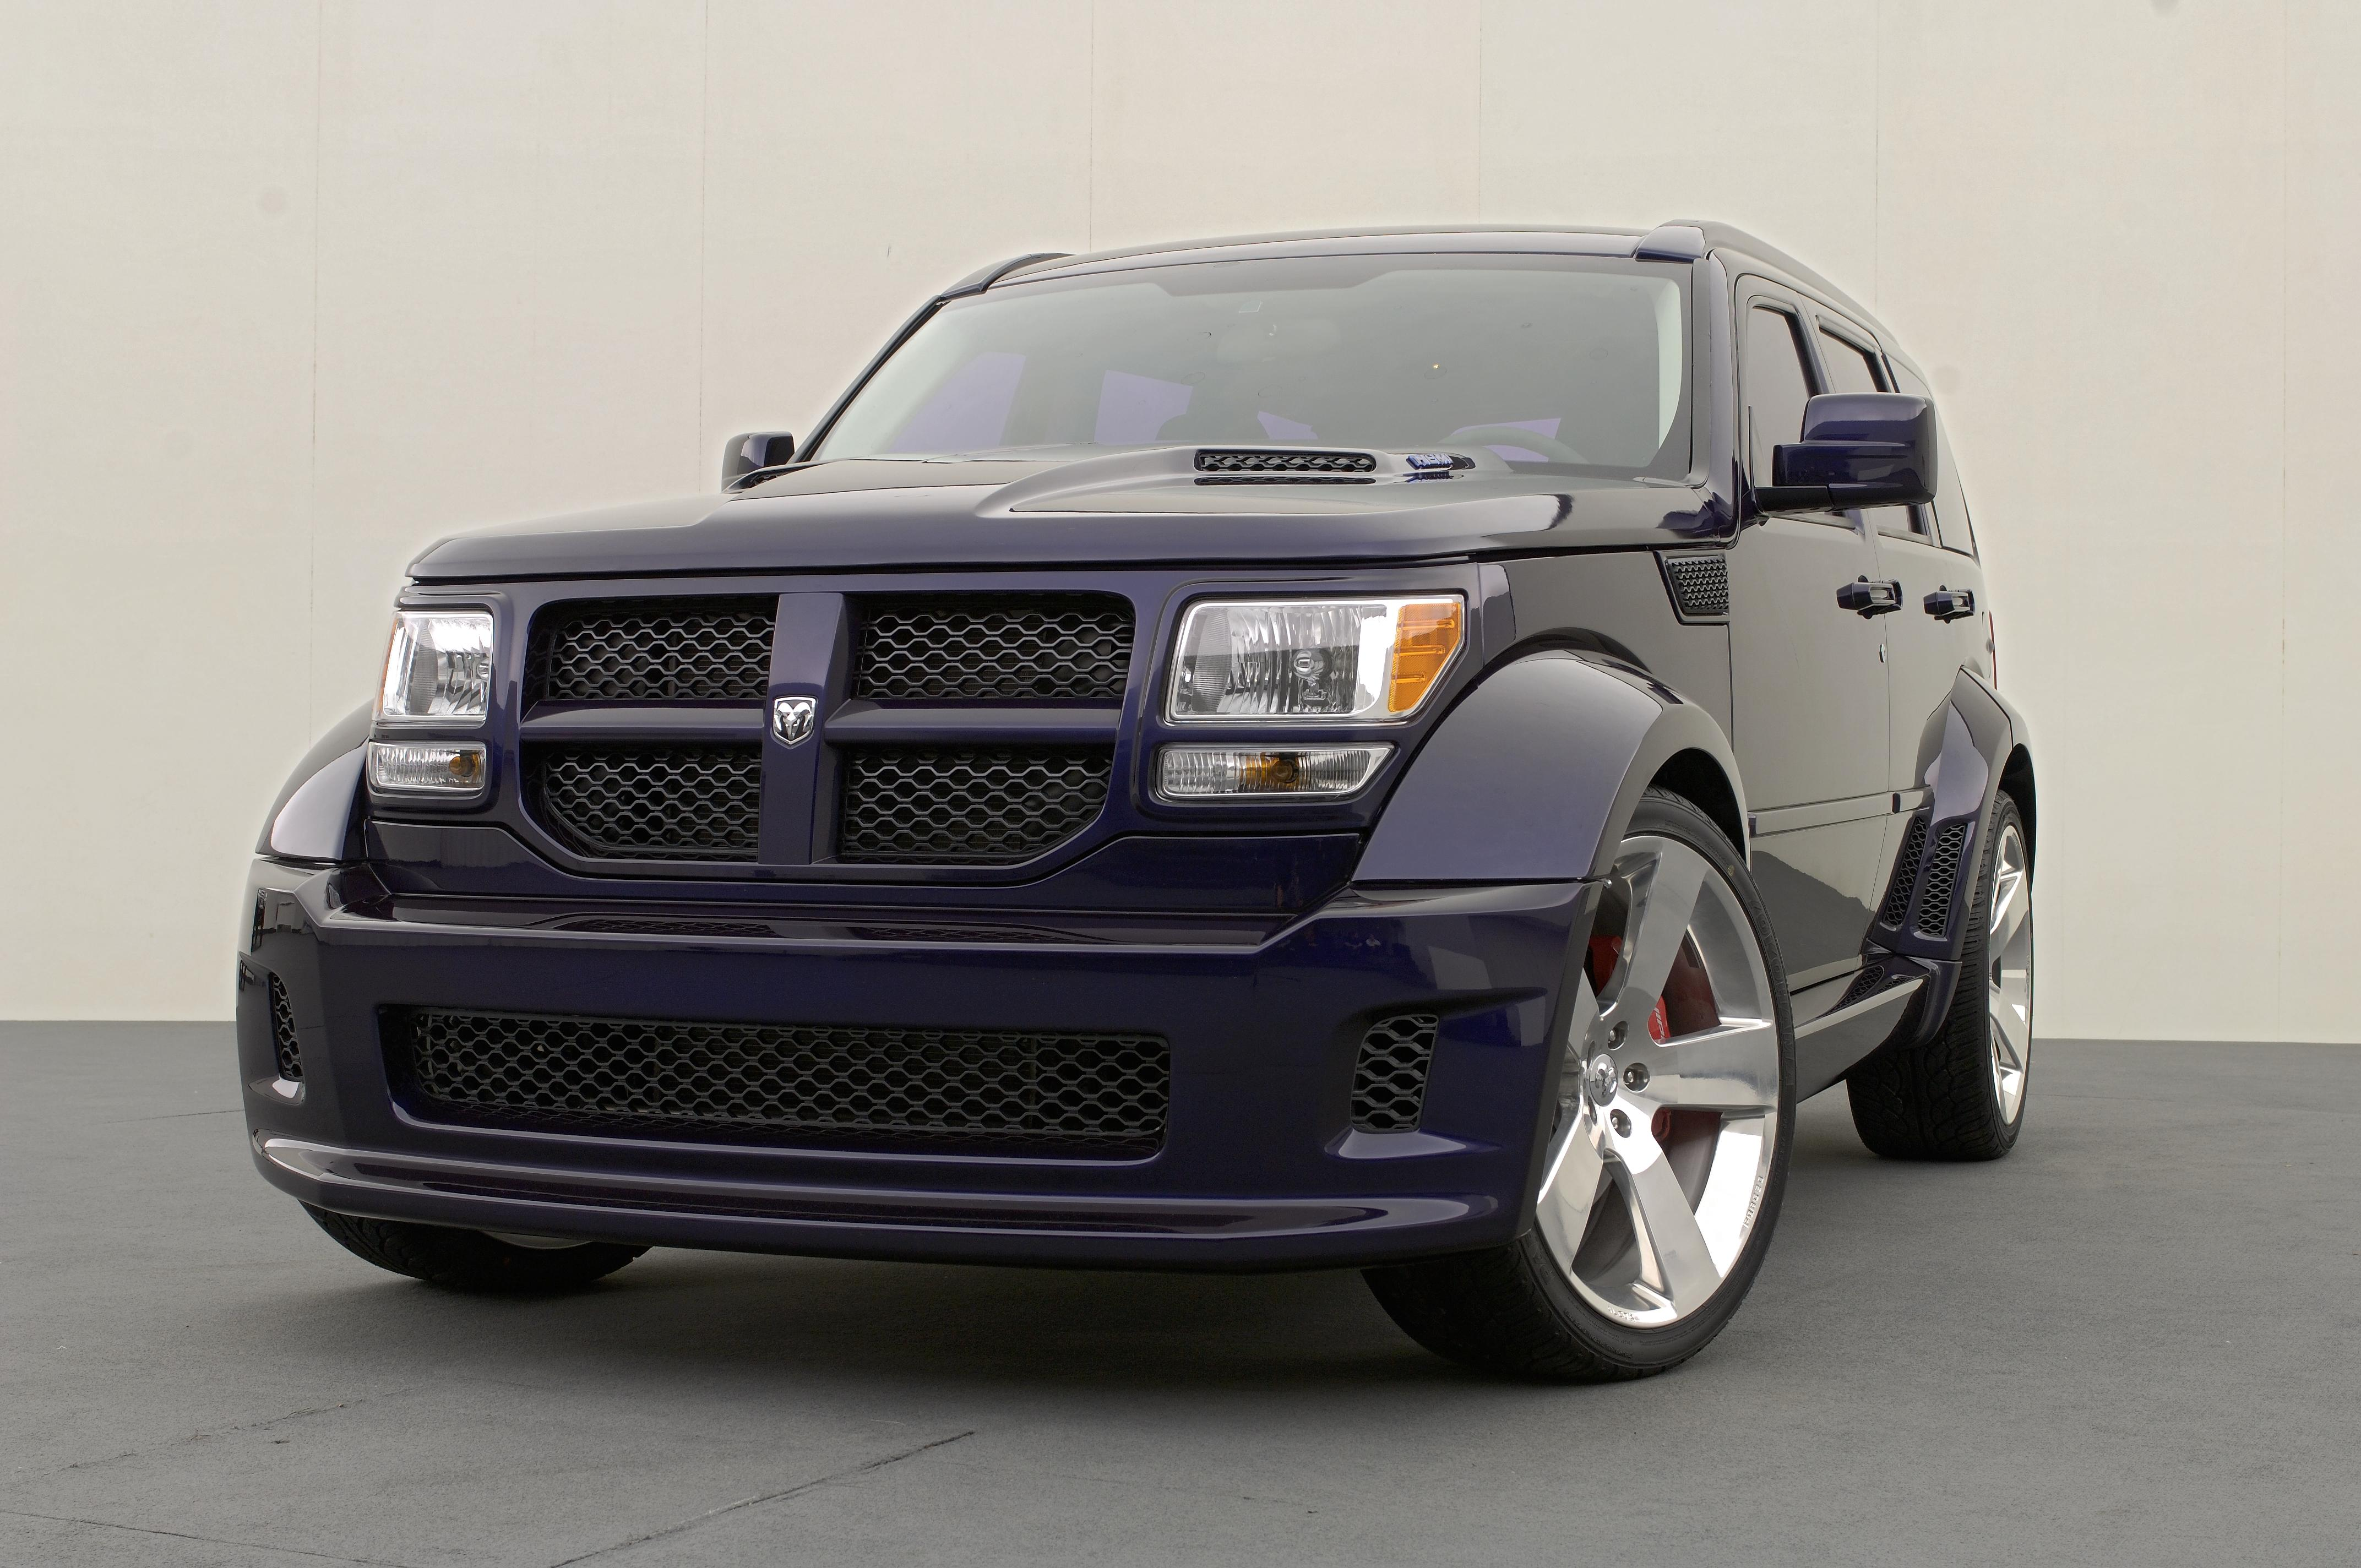 2007 Dodge Nitro 5.7L HEMI | Top Speed